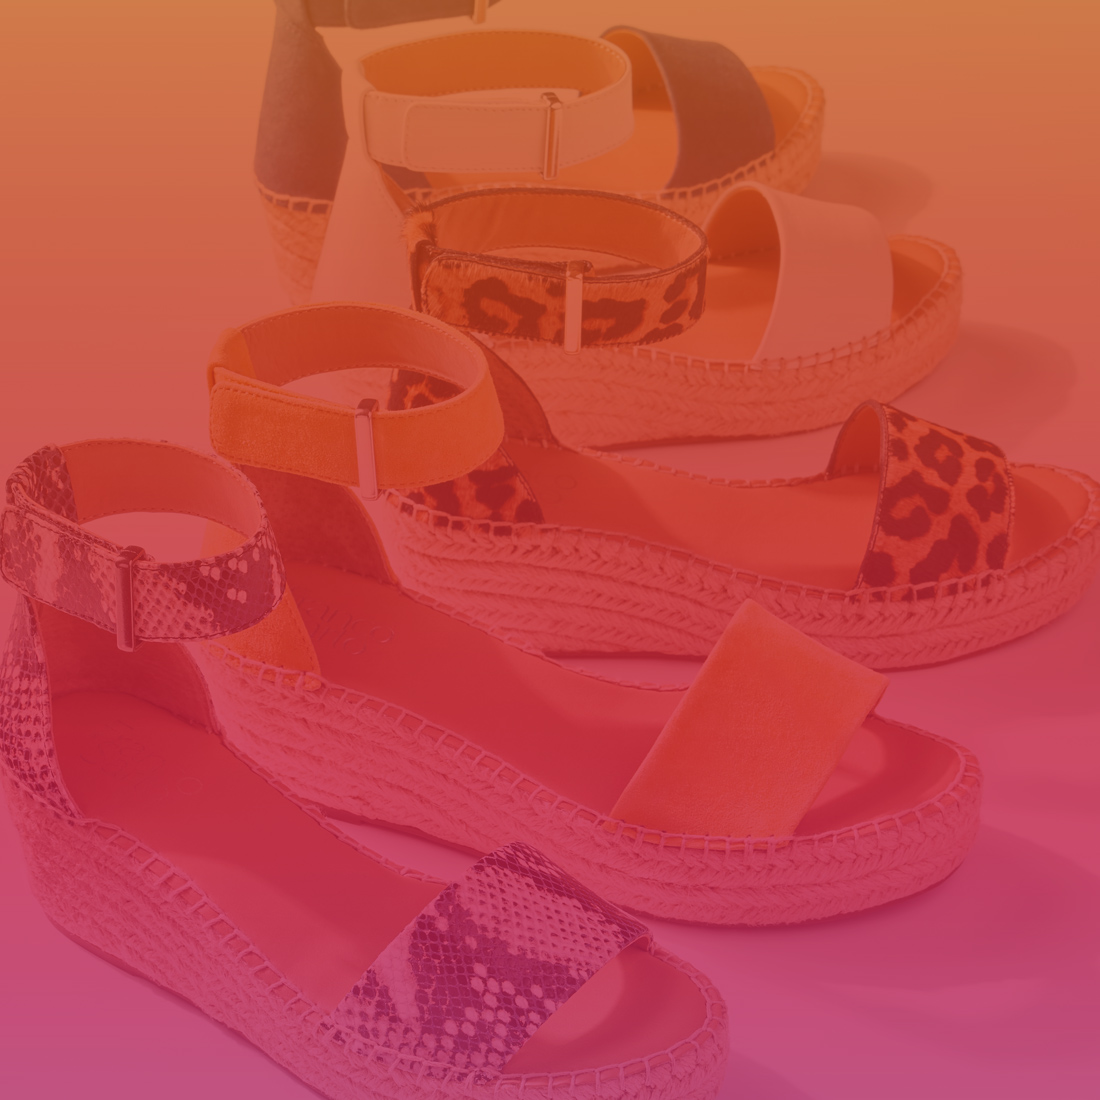 Off Broadway Shoes: Online Shoes, Sneakers, Sandals & Boots